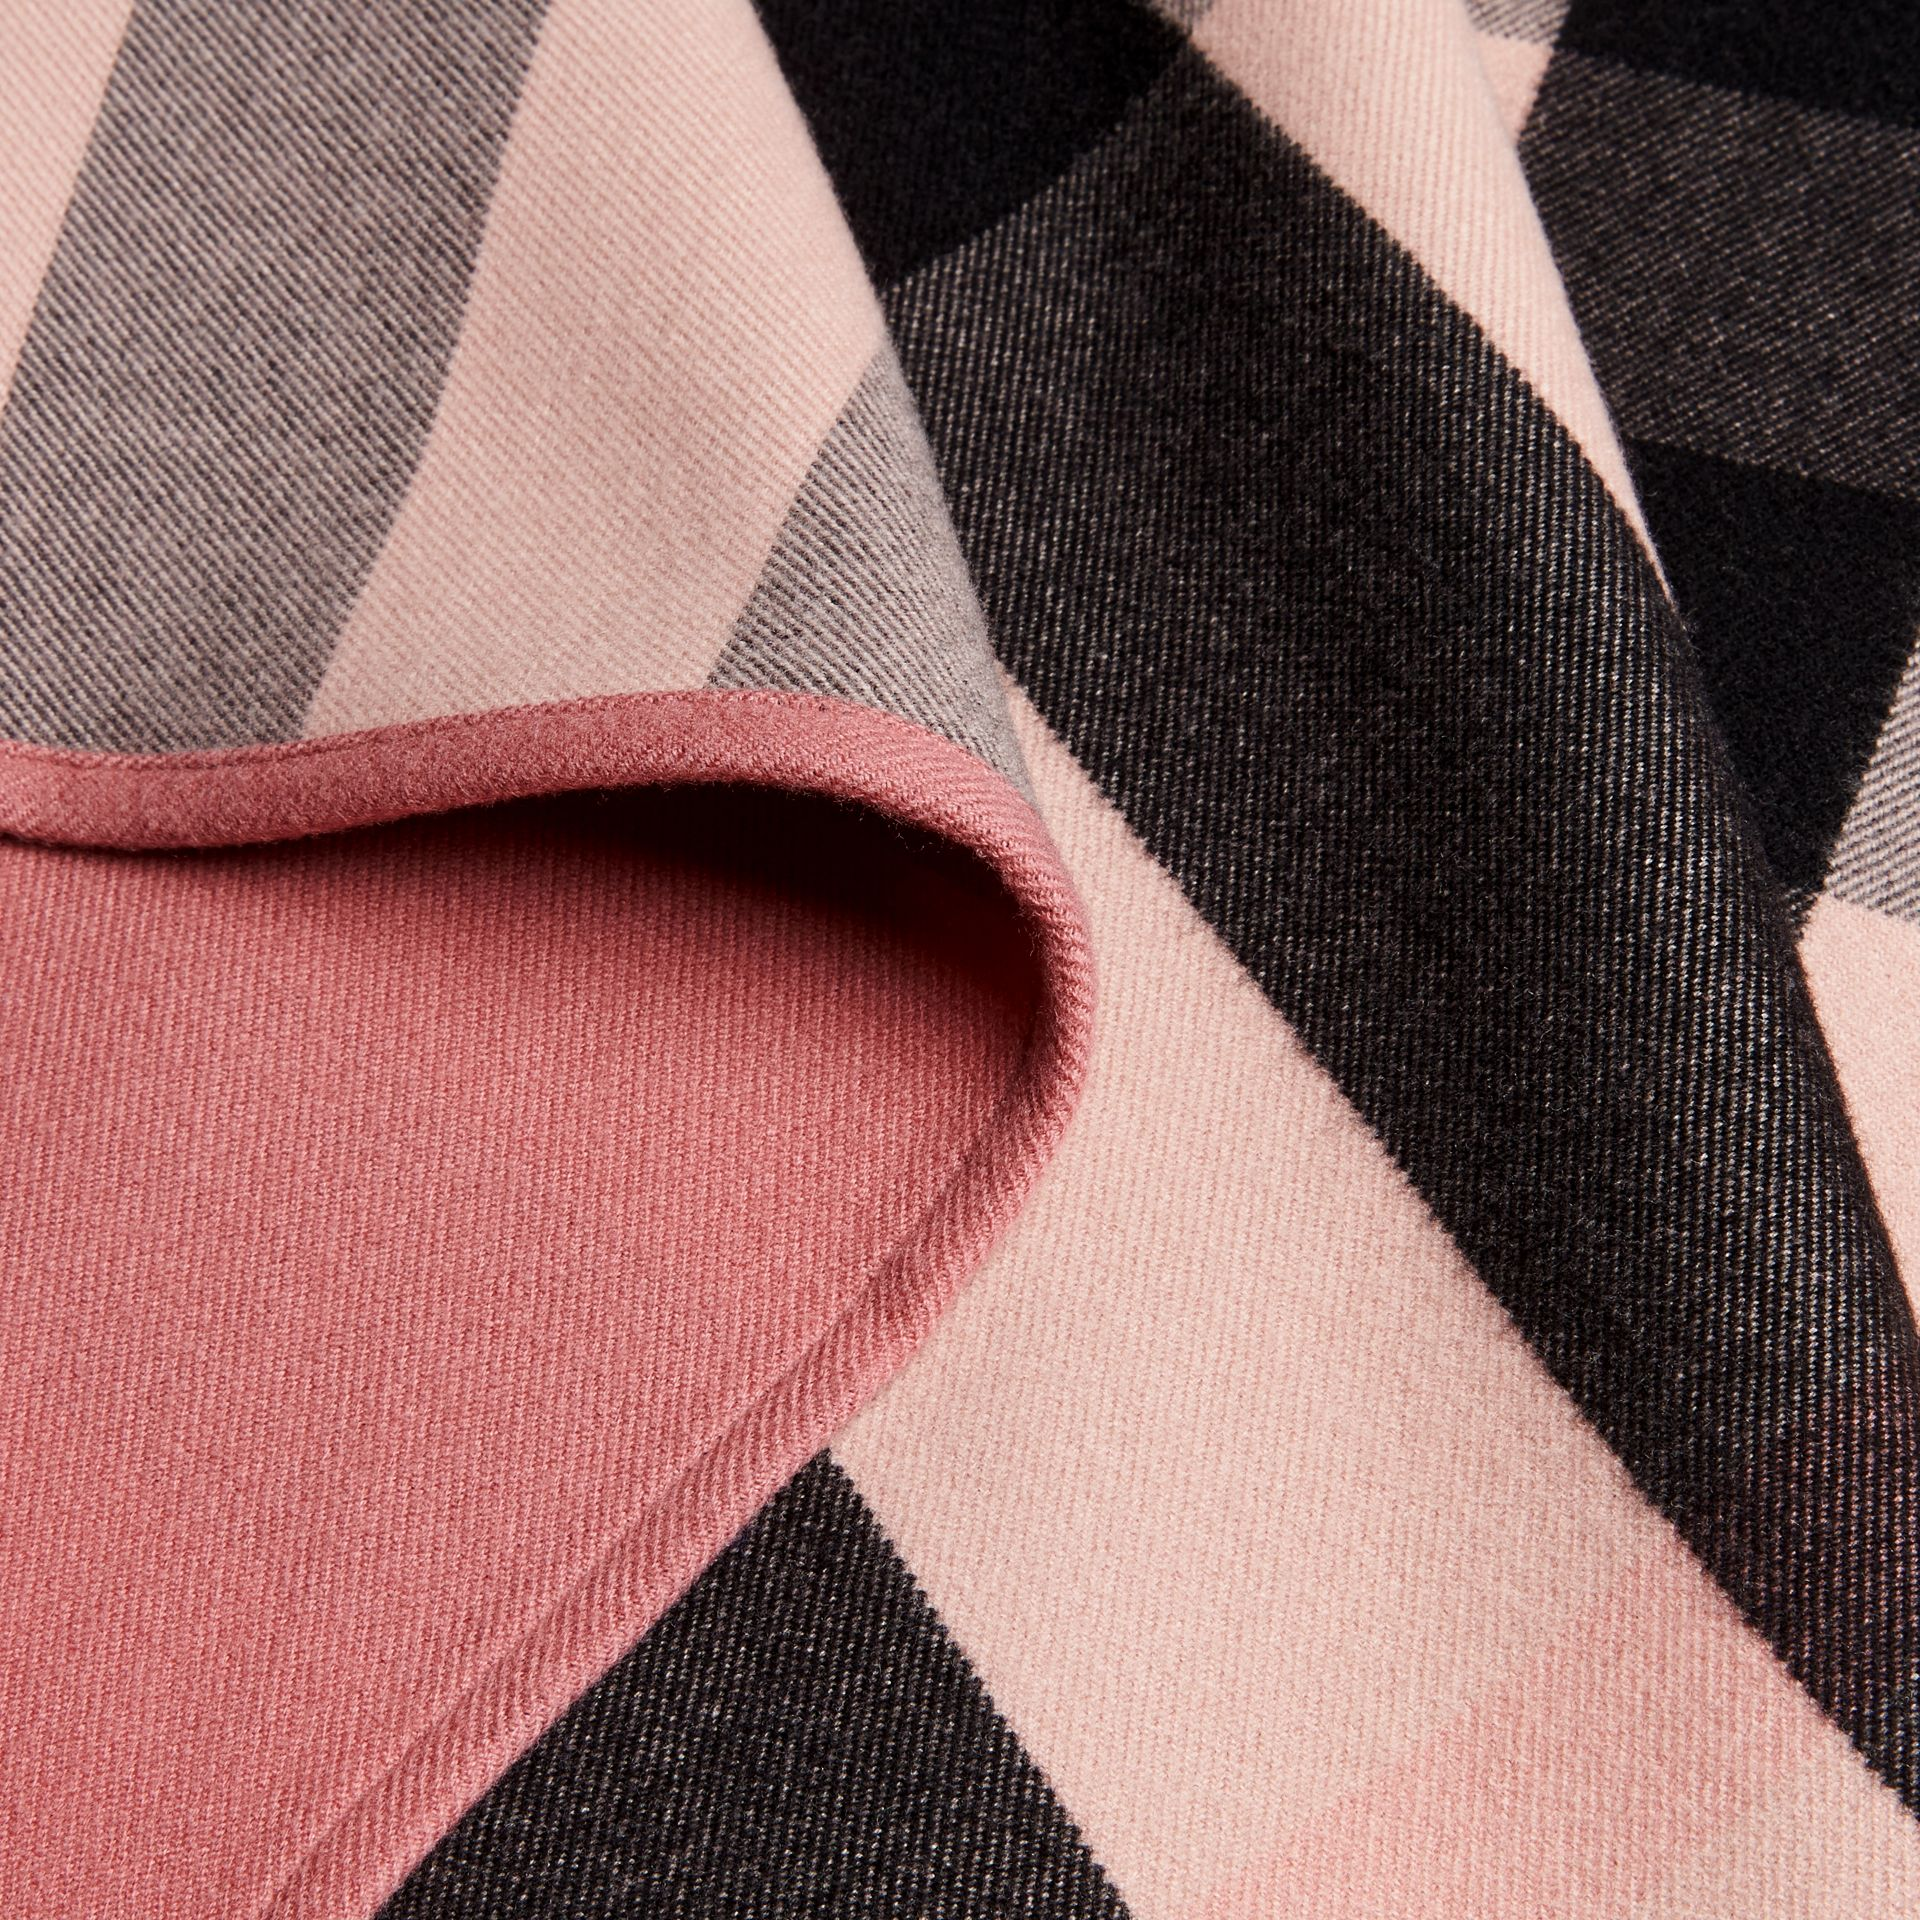 Reversible Check Merino Wool Poncho in Ash Rose - Women | Burberry - gallery image 2